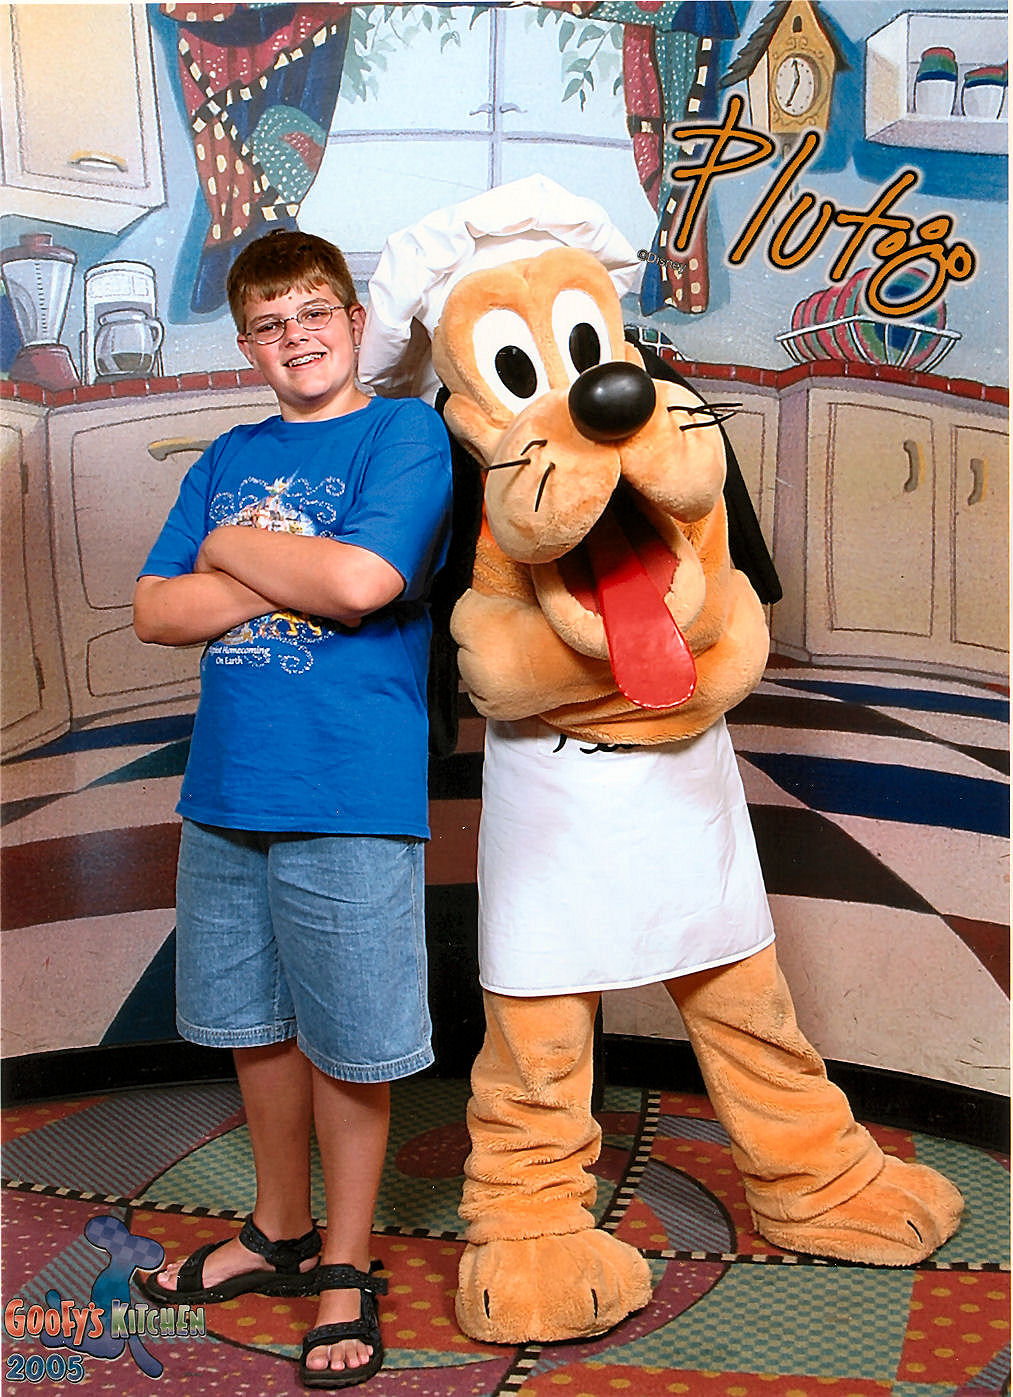 Pluto and I in a souvenir photo taken at Goofy's Kitchen, a character meet and greet dinner at the Disneyland Hotel.